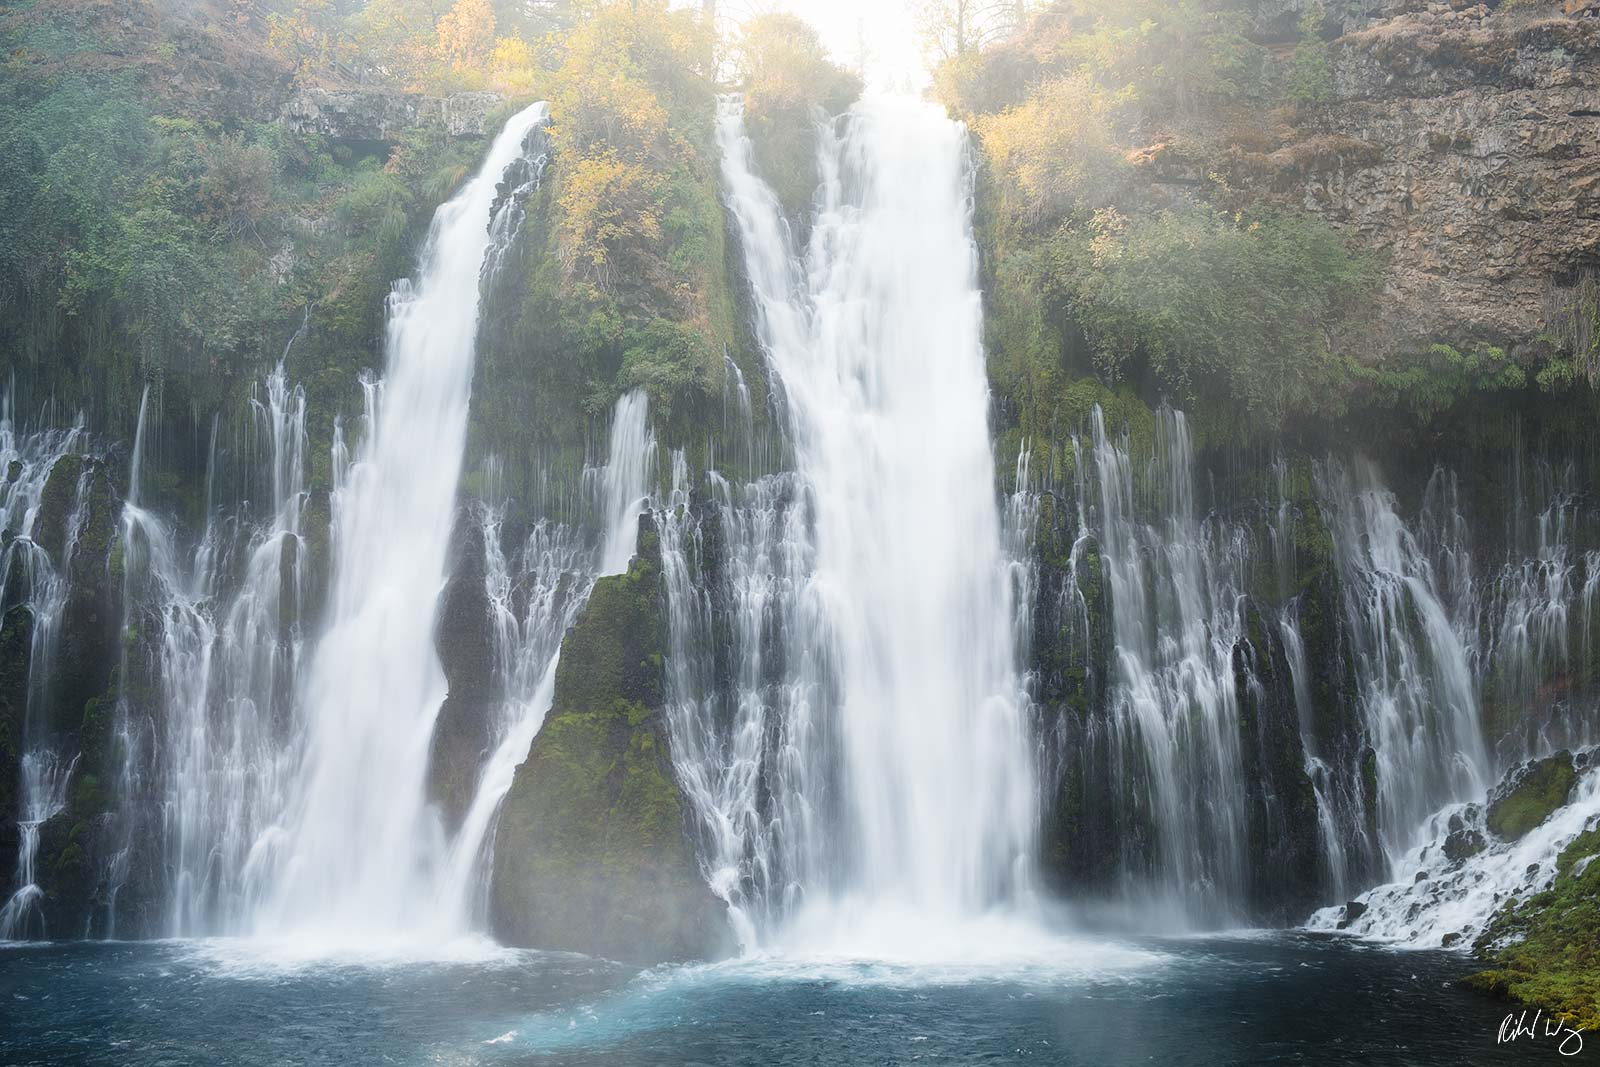 Burney Falls, McArthur-Burney Falls Memorial State Park, California, photo, photo